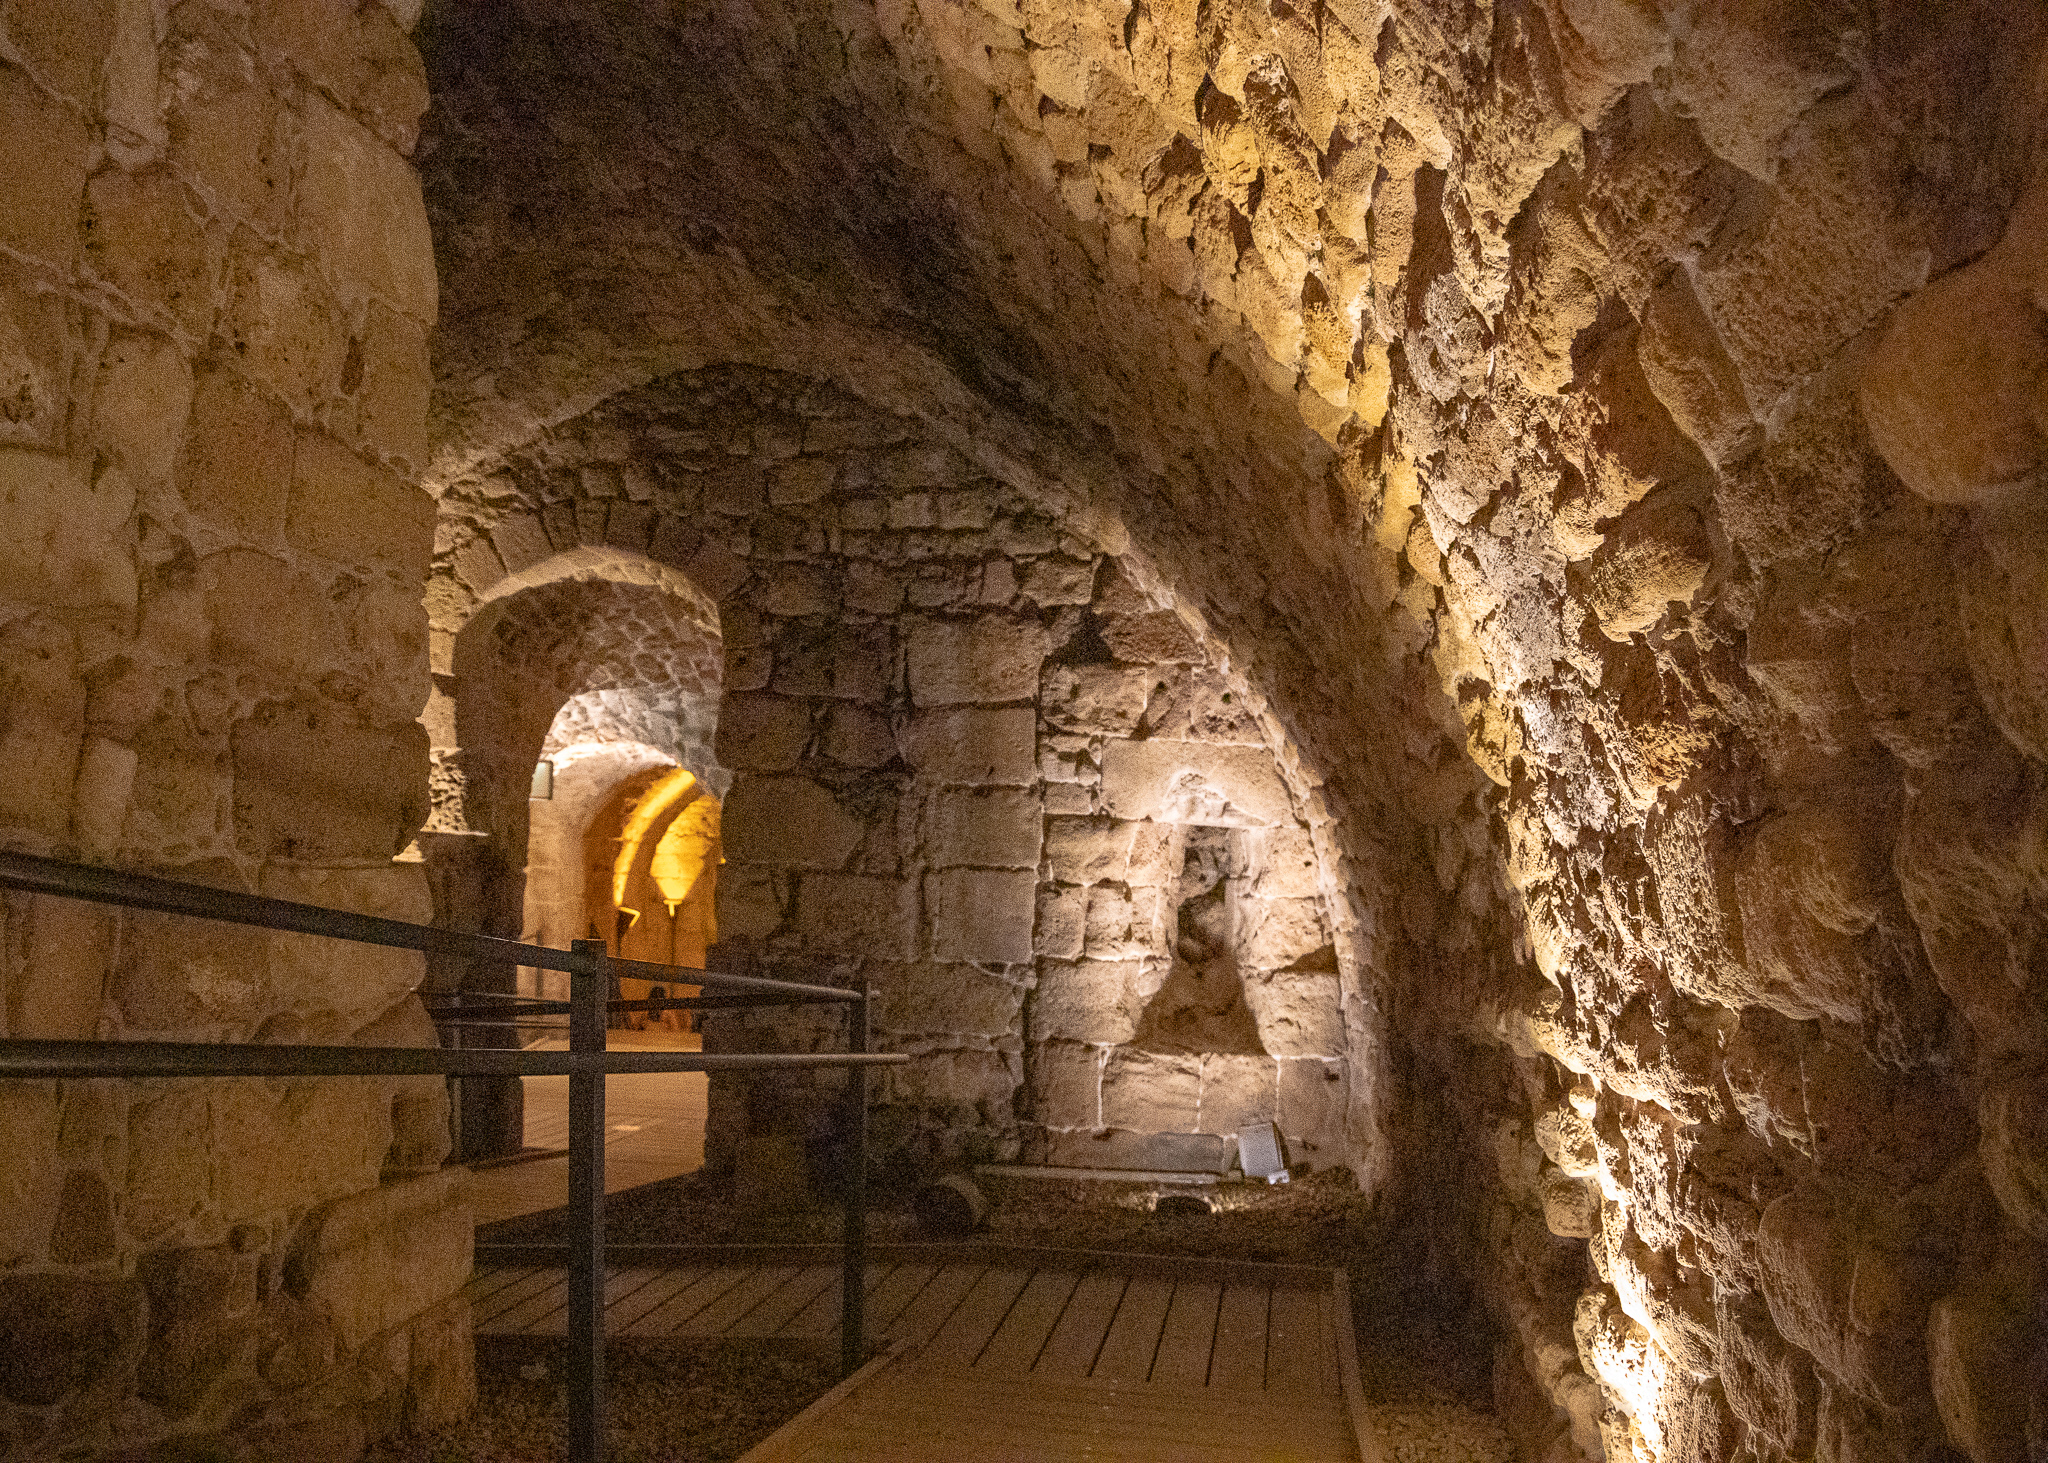 Subterranean passageways